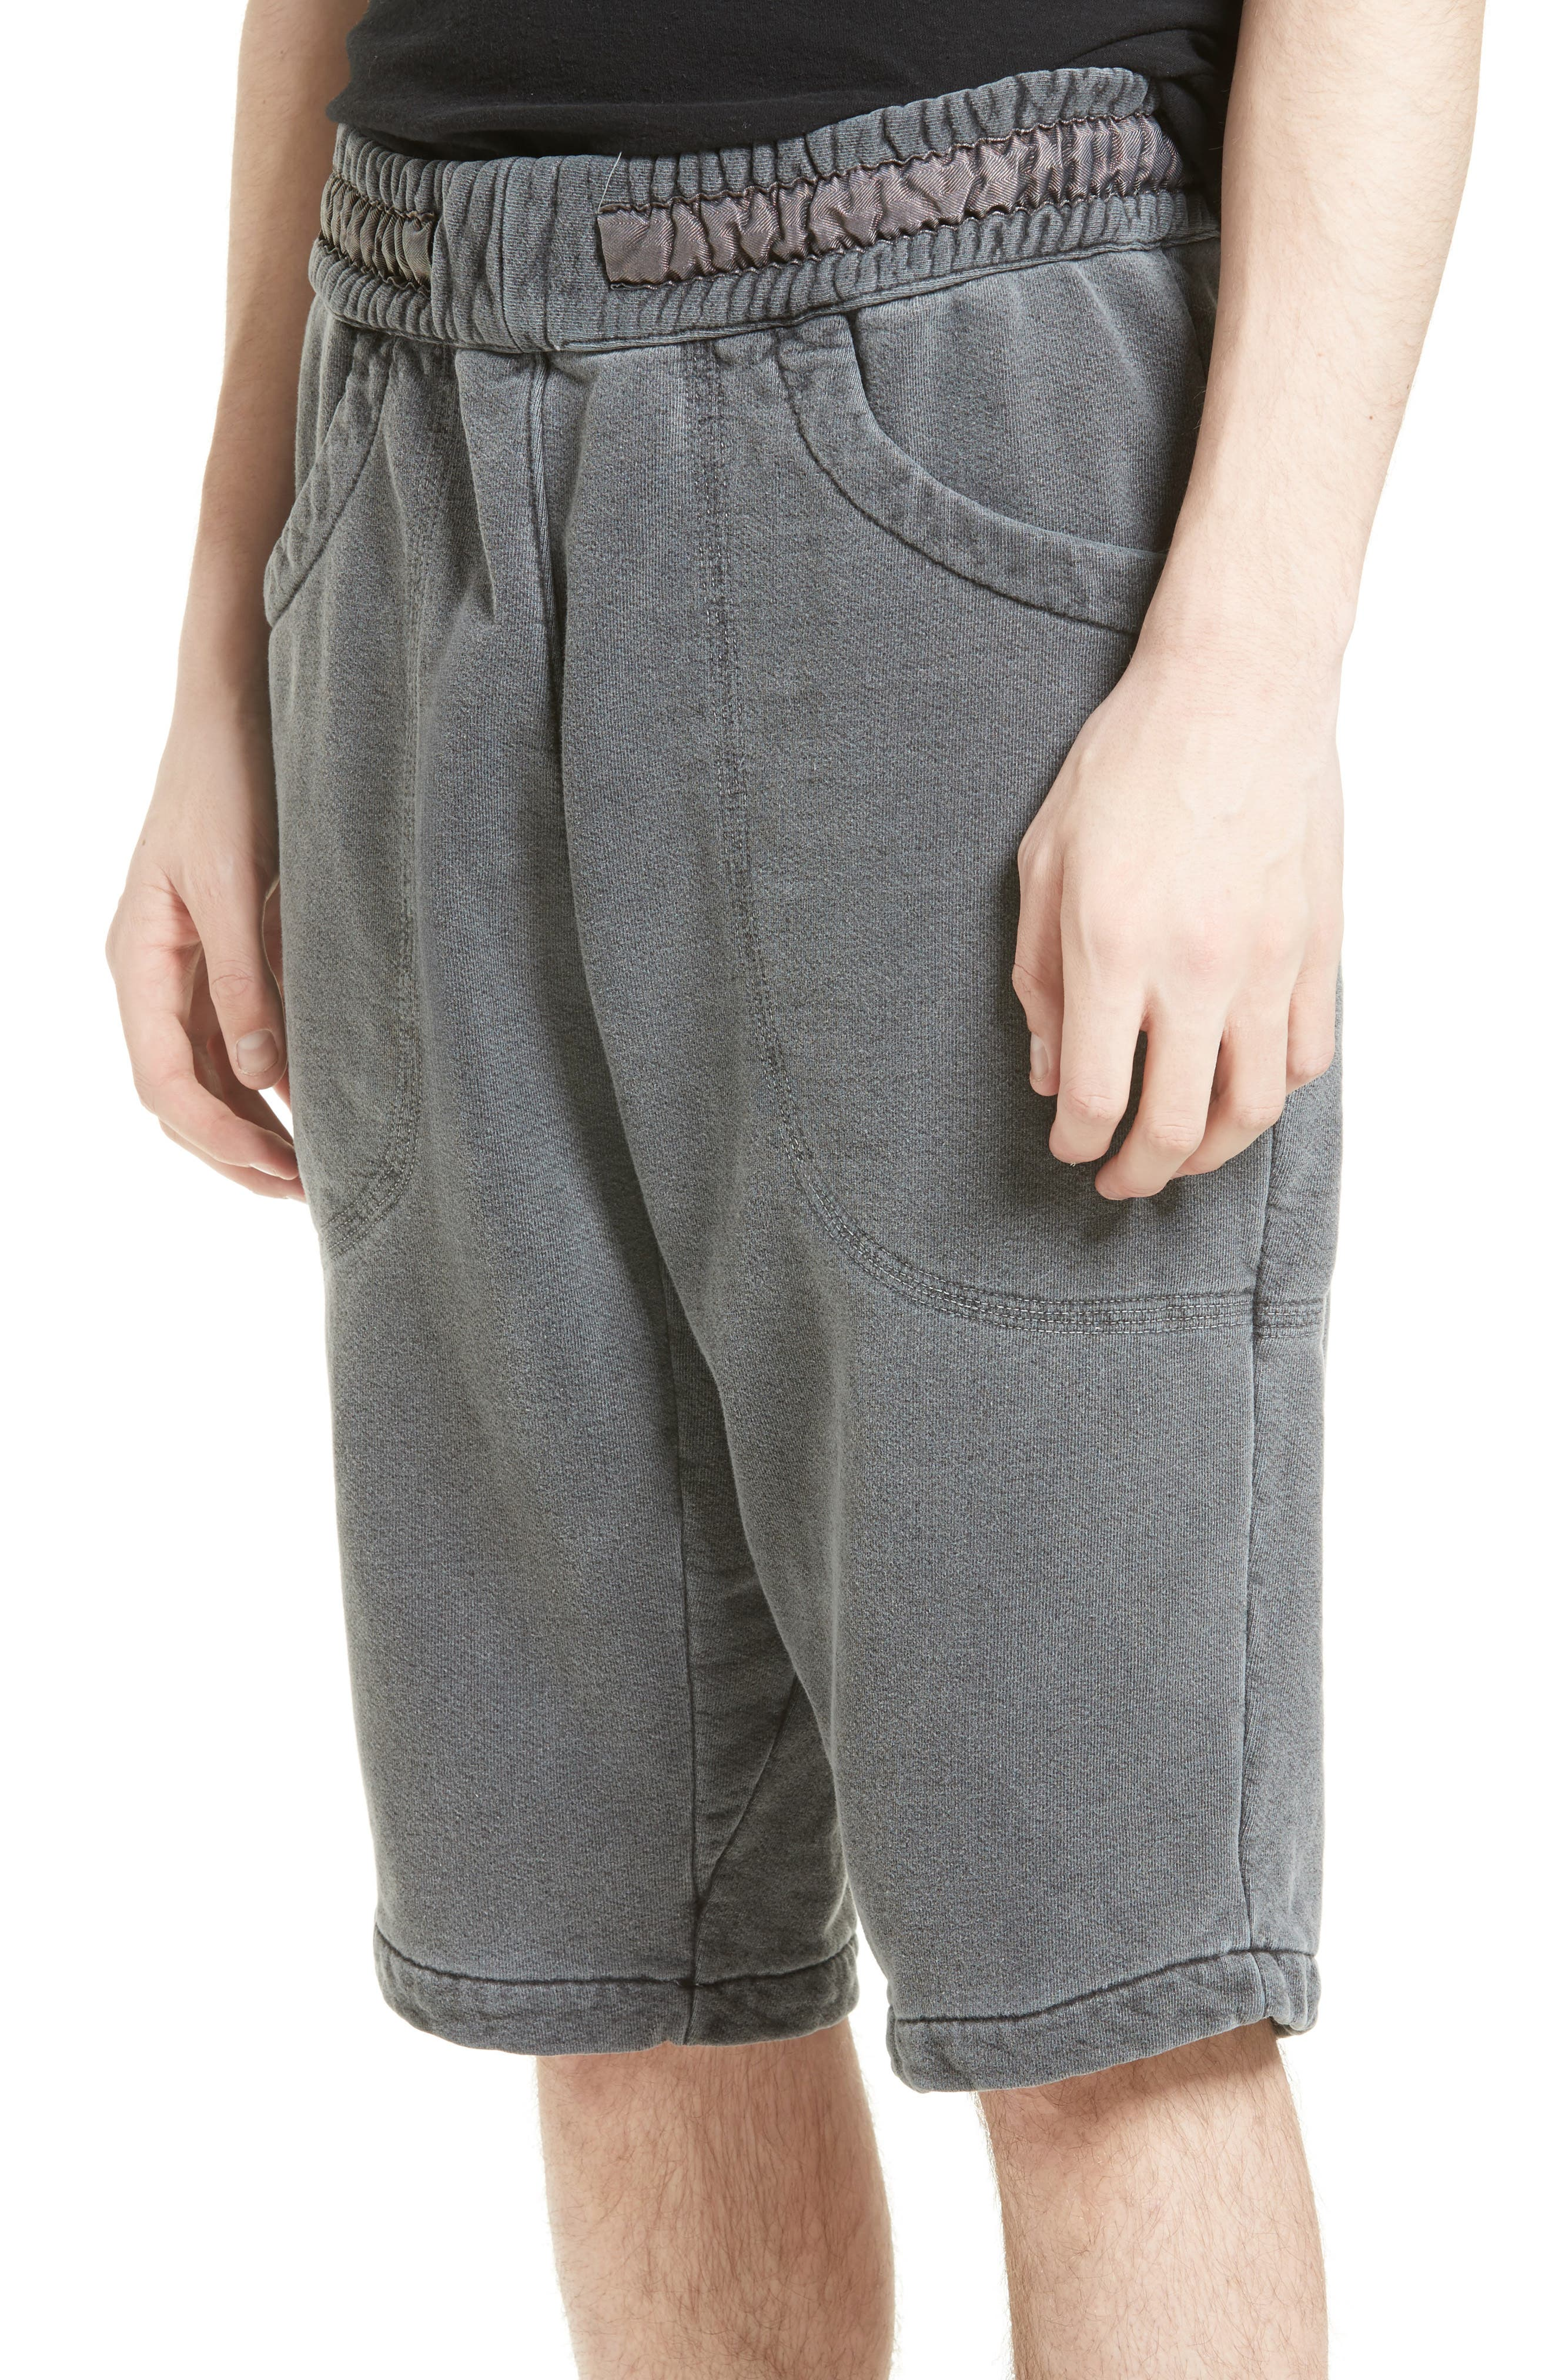 Quark Sweat Shorts,                             Alternate thumbnail 4, color,                             001